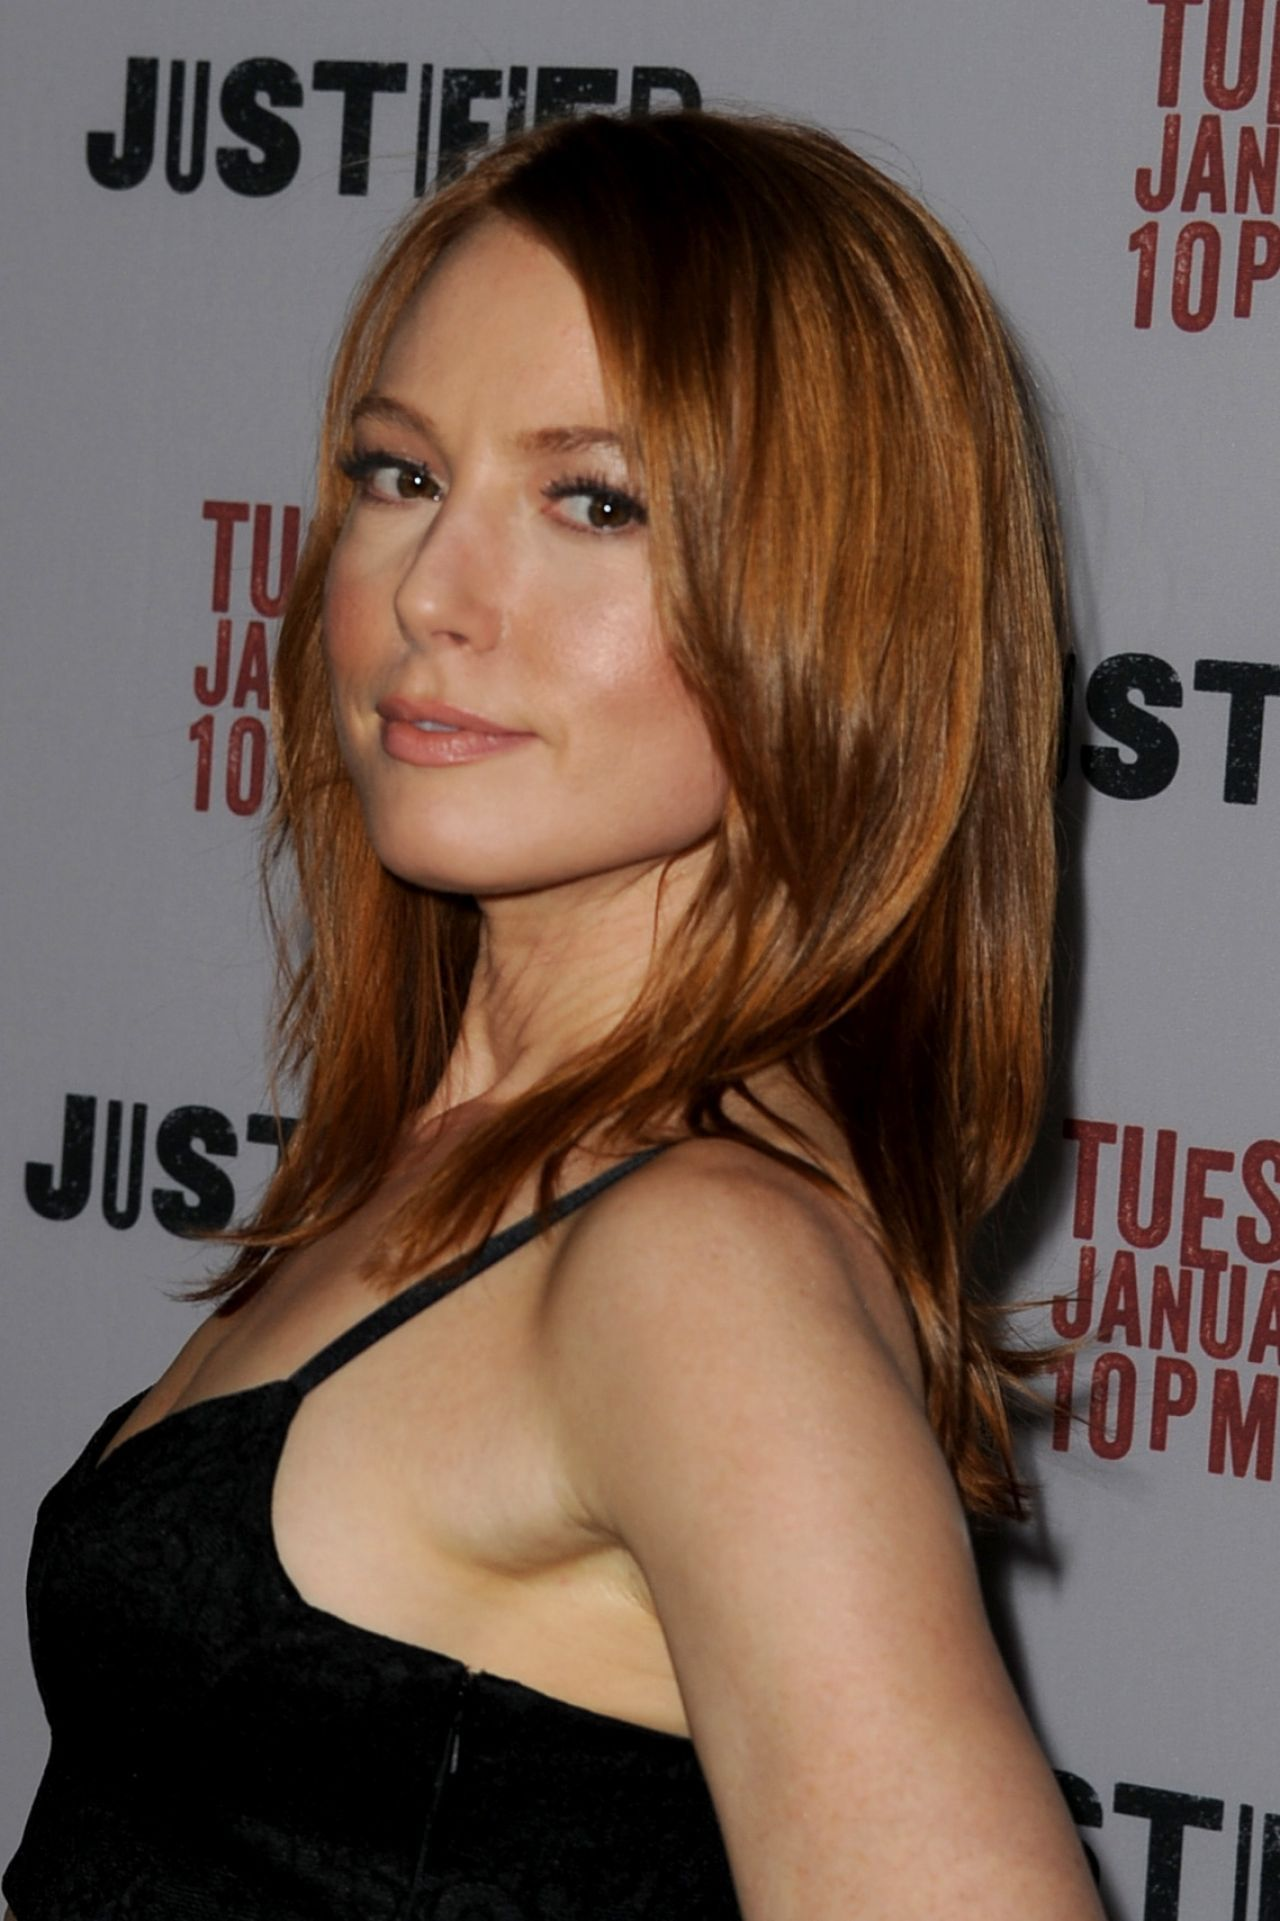 alicia witt that's incredible